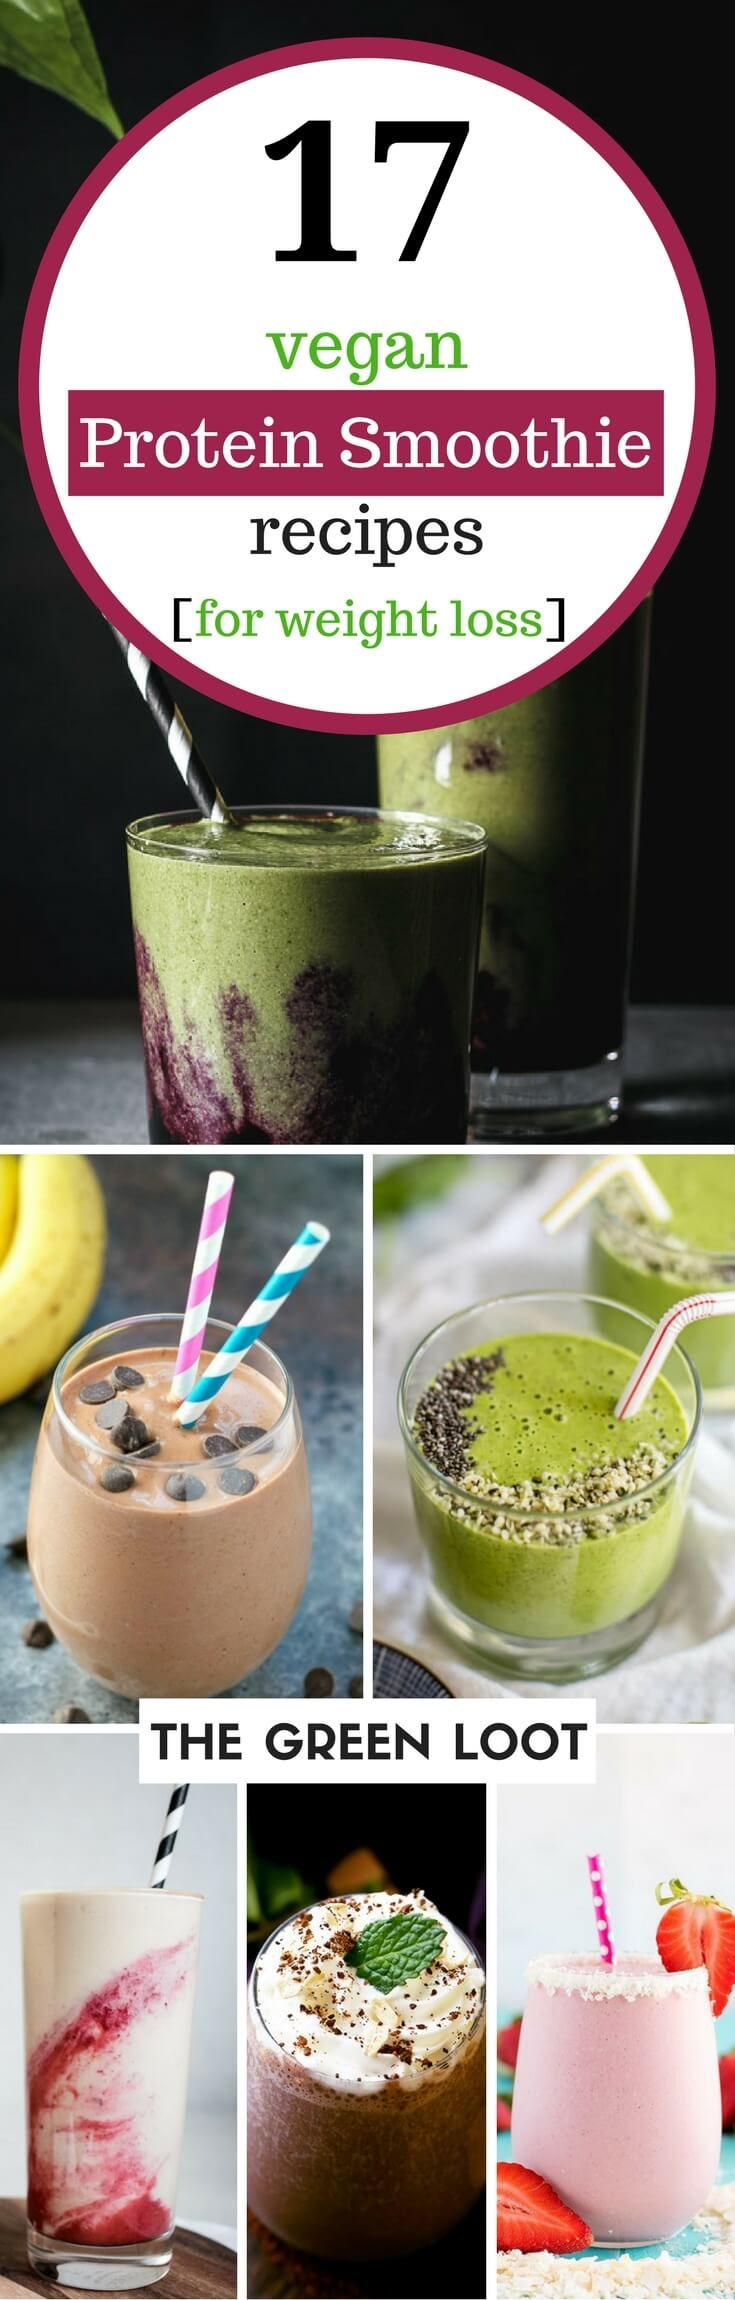 Vegan protein smoothie recipes for weight loss that you can drink post workout or for breakfast. They are healthy and dairy-free, made with chocolate, peanut butter, berries, banana, with or without powder. Drink them everyday to slim down and to help your muscle growth!   The Green Loot #vegan #protein #weightloss